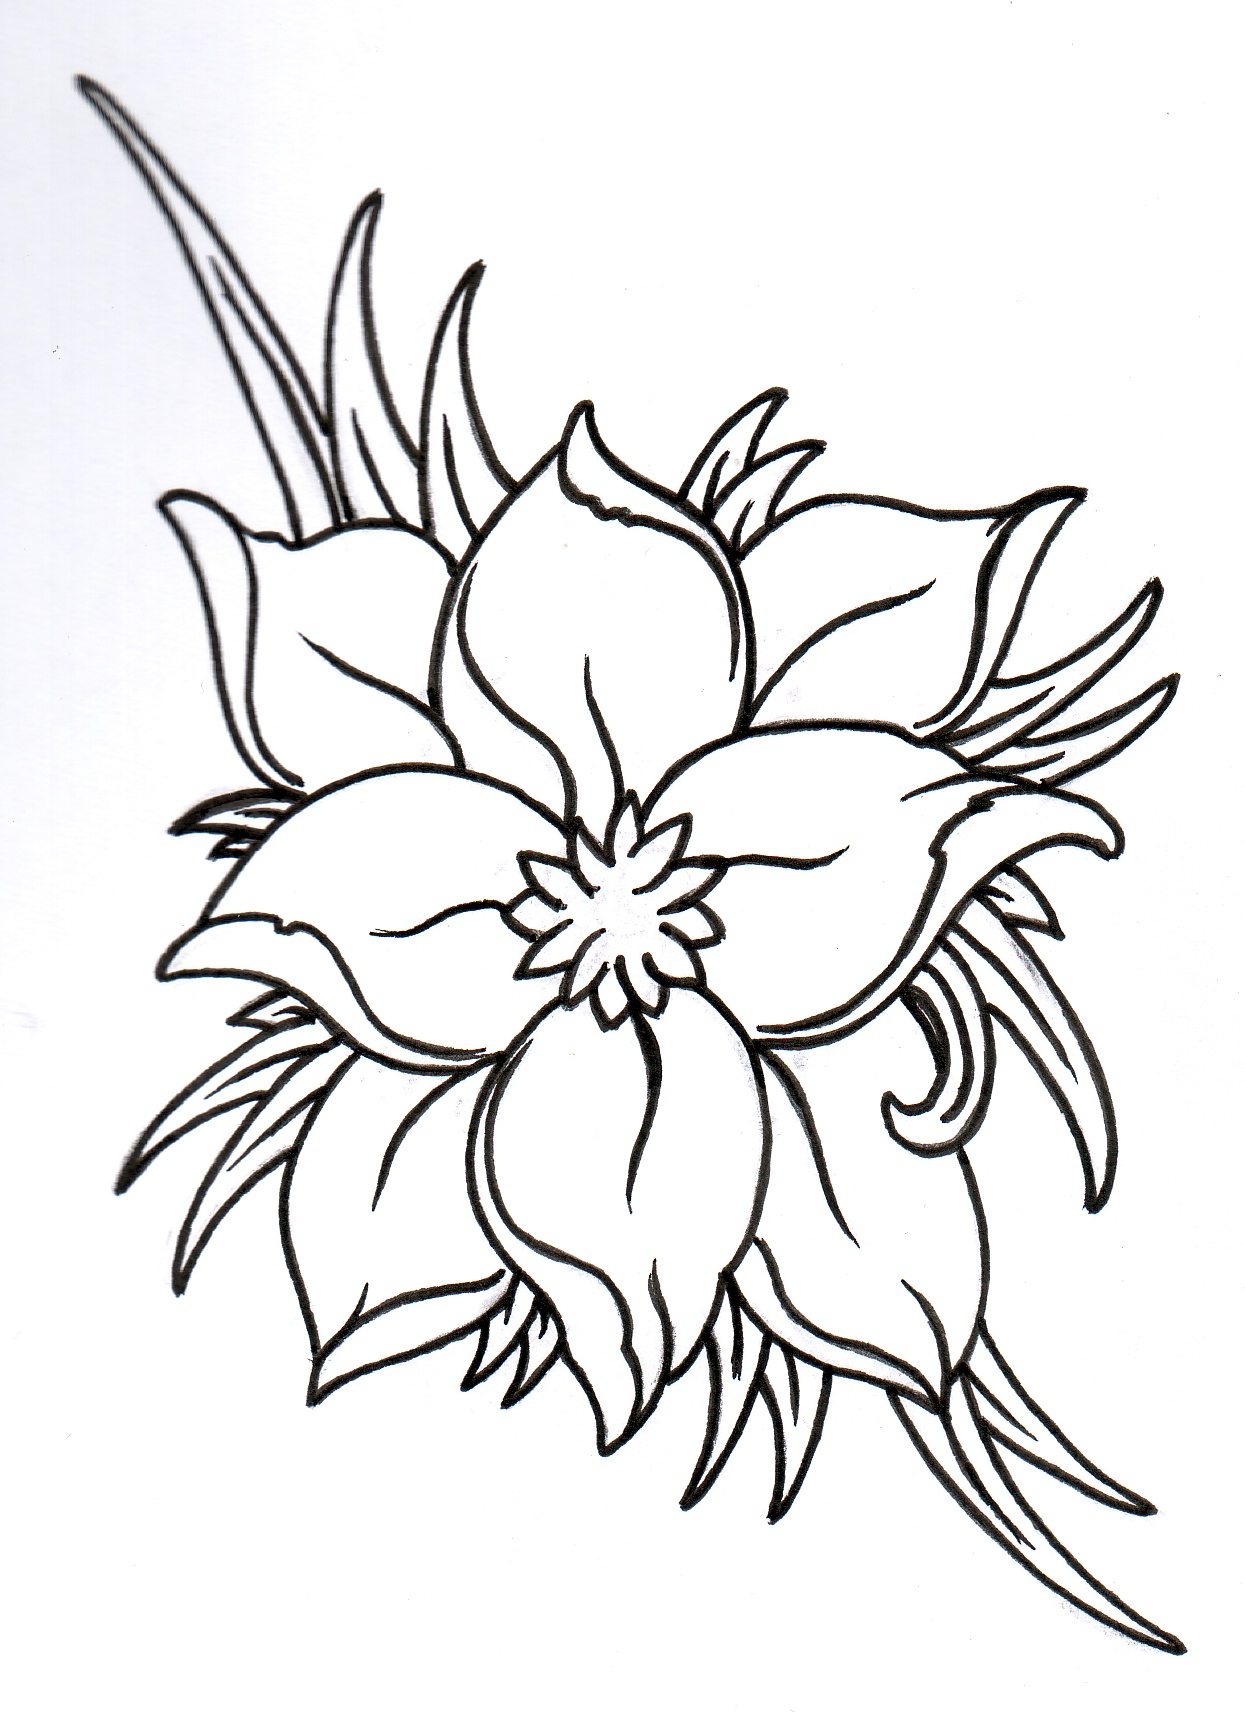 Lotus flower drawing outline at getdrawings free for personal 1245x1712 out lines flowers images best ideas of lotus flower outline izmirmasajfo